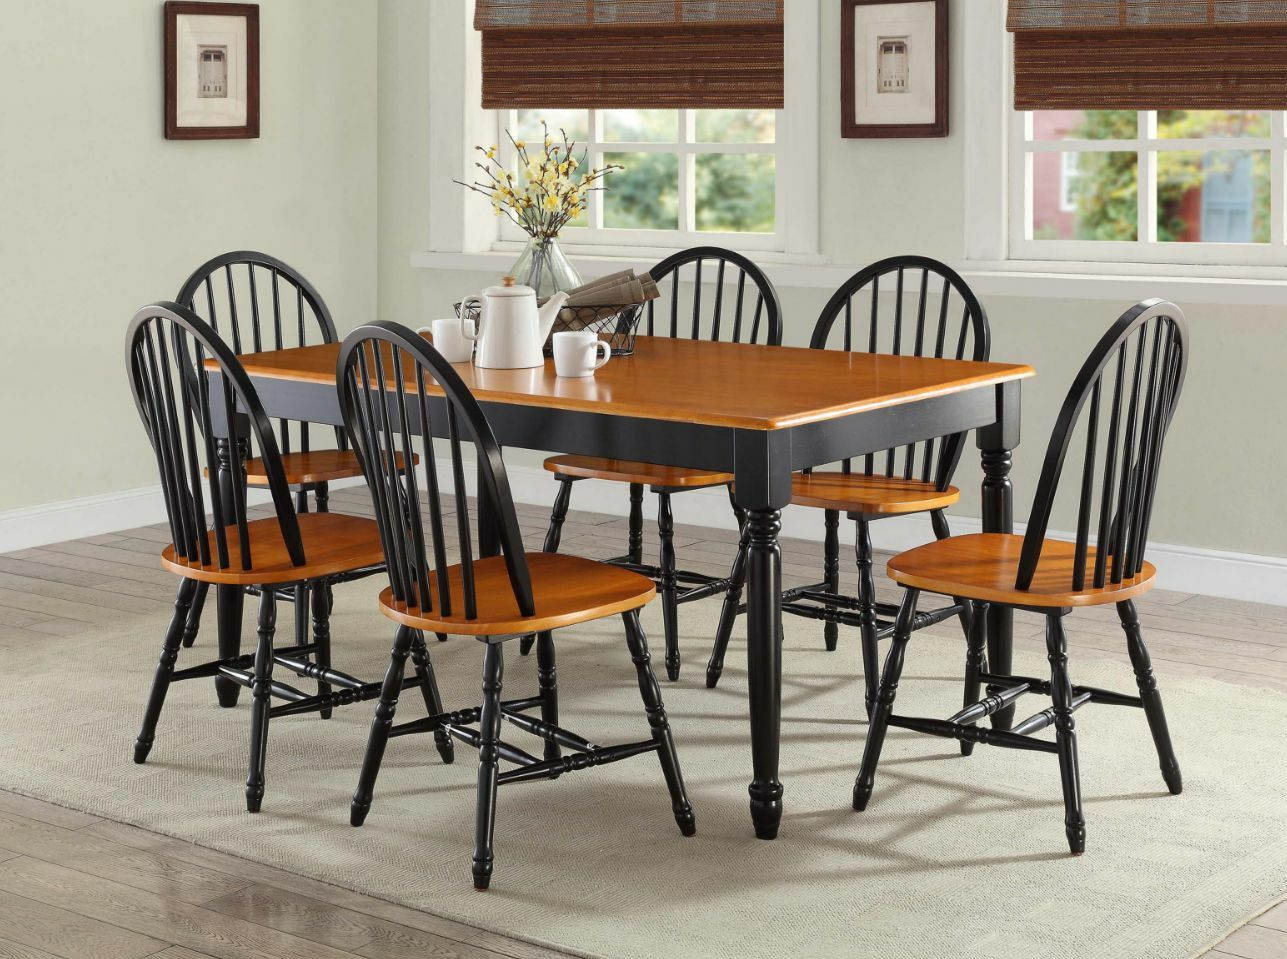 7 pc dining room sets table chairs wood farmhouse windsor for Dining room farm table